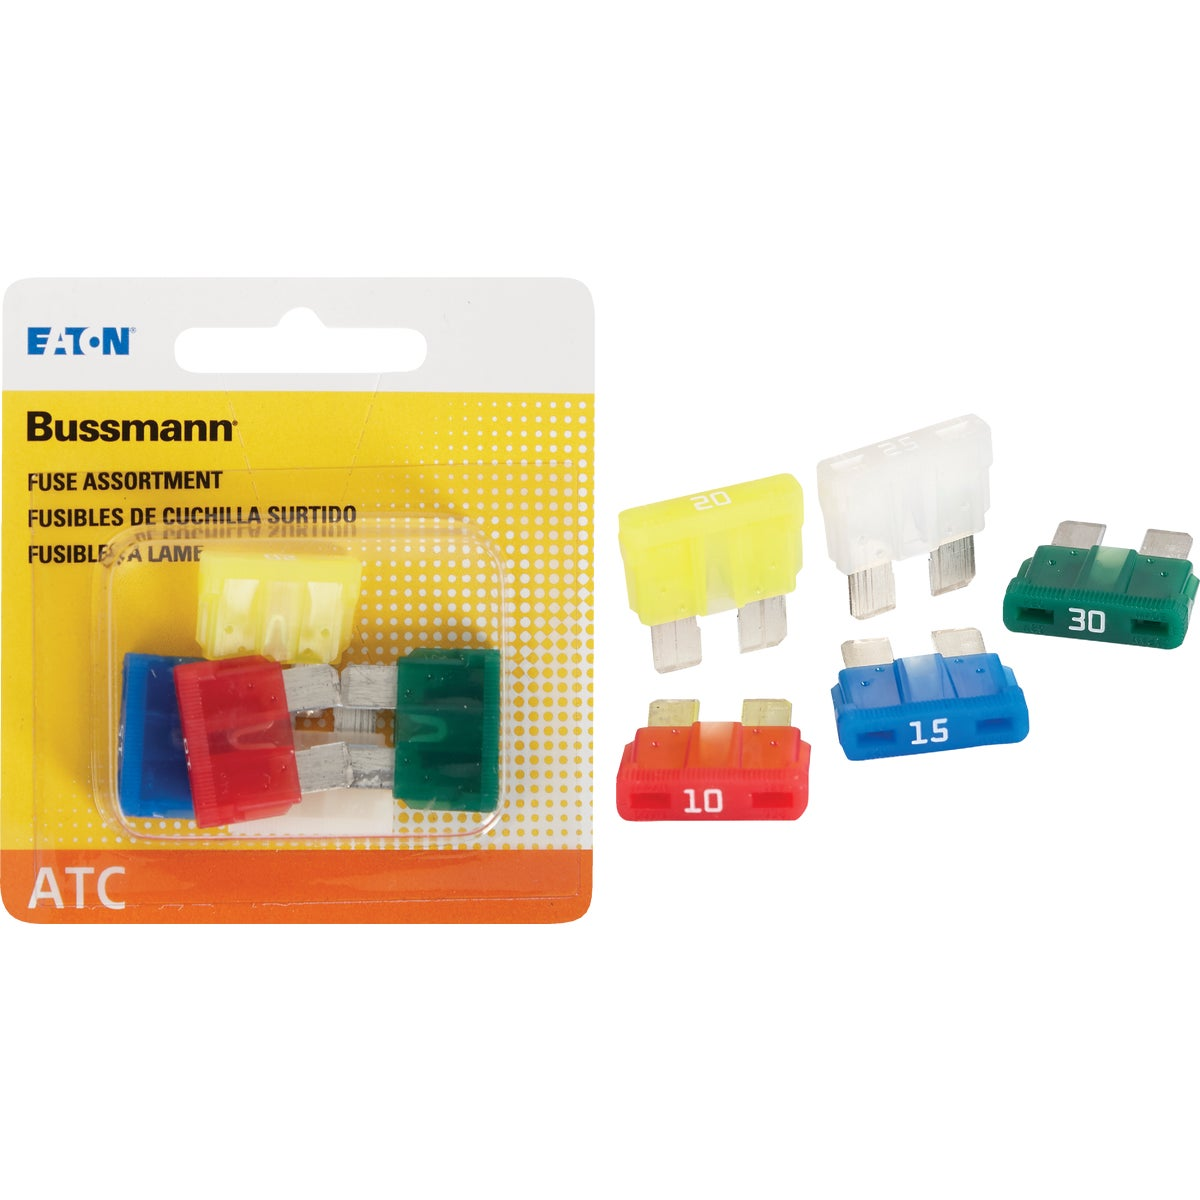 5PK FUSE ASSORTMENT